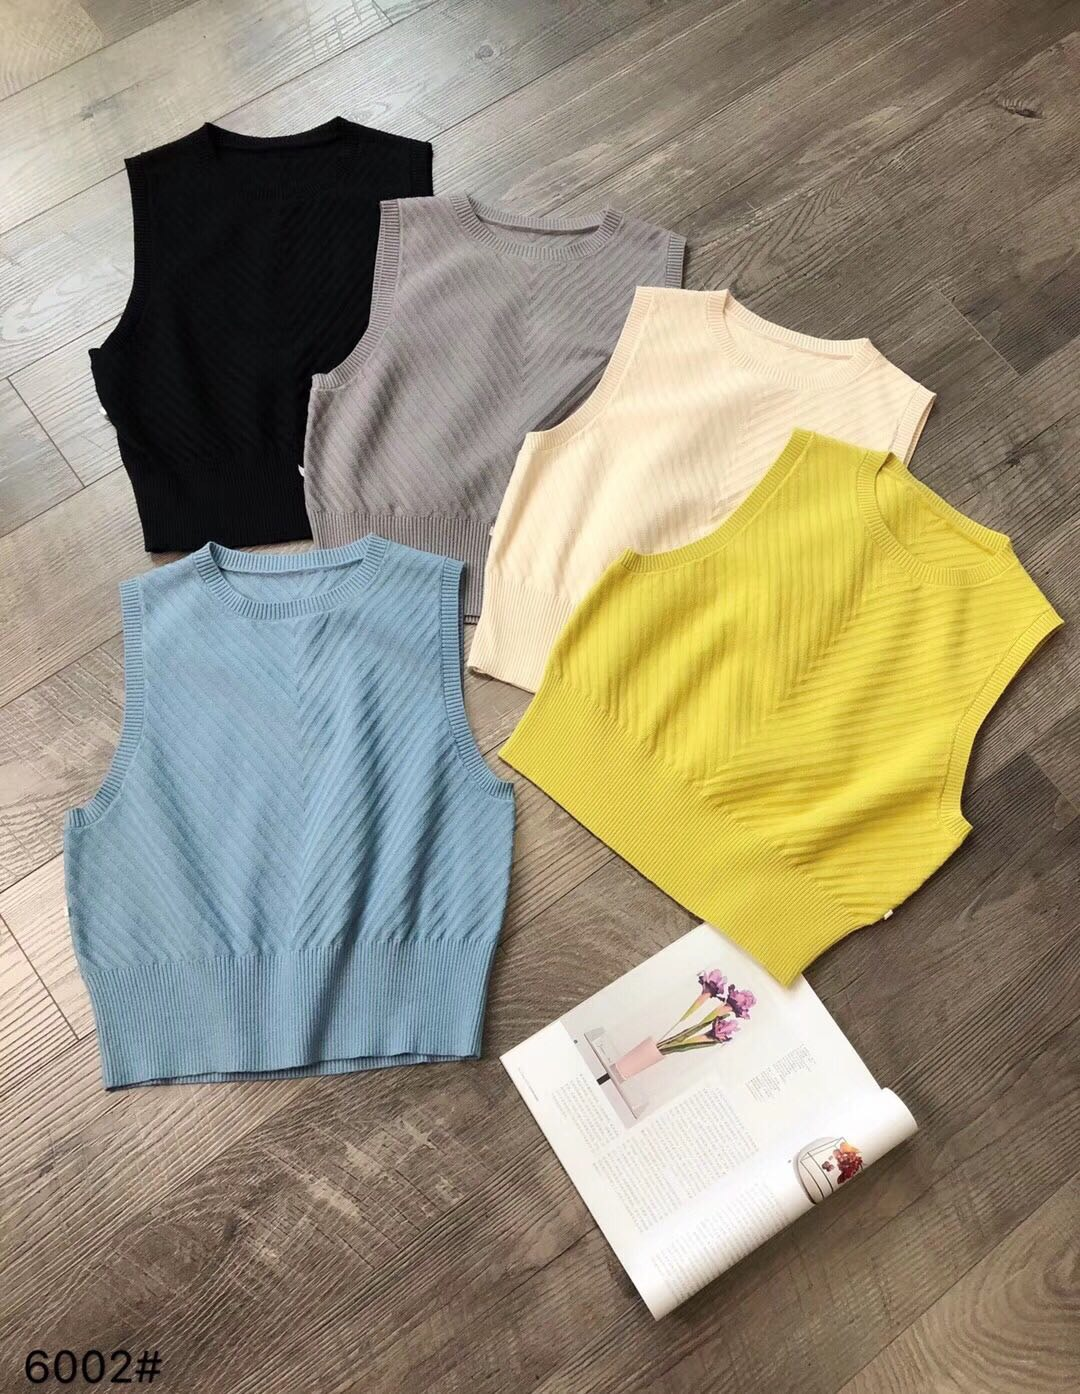 Foreign style Korean version loose and versatile thin knitted vest, pullover round neck, sleeveless vest, Camille sweater, womens autumn